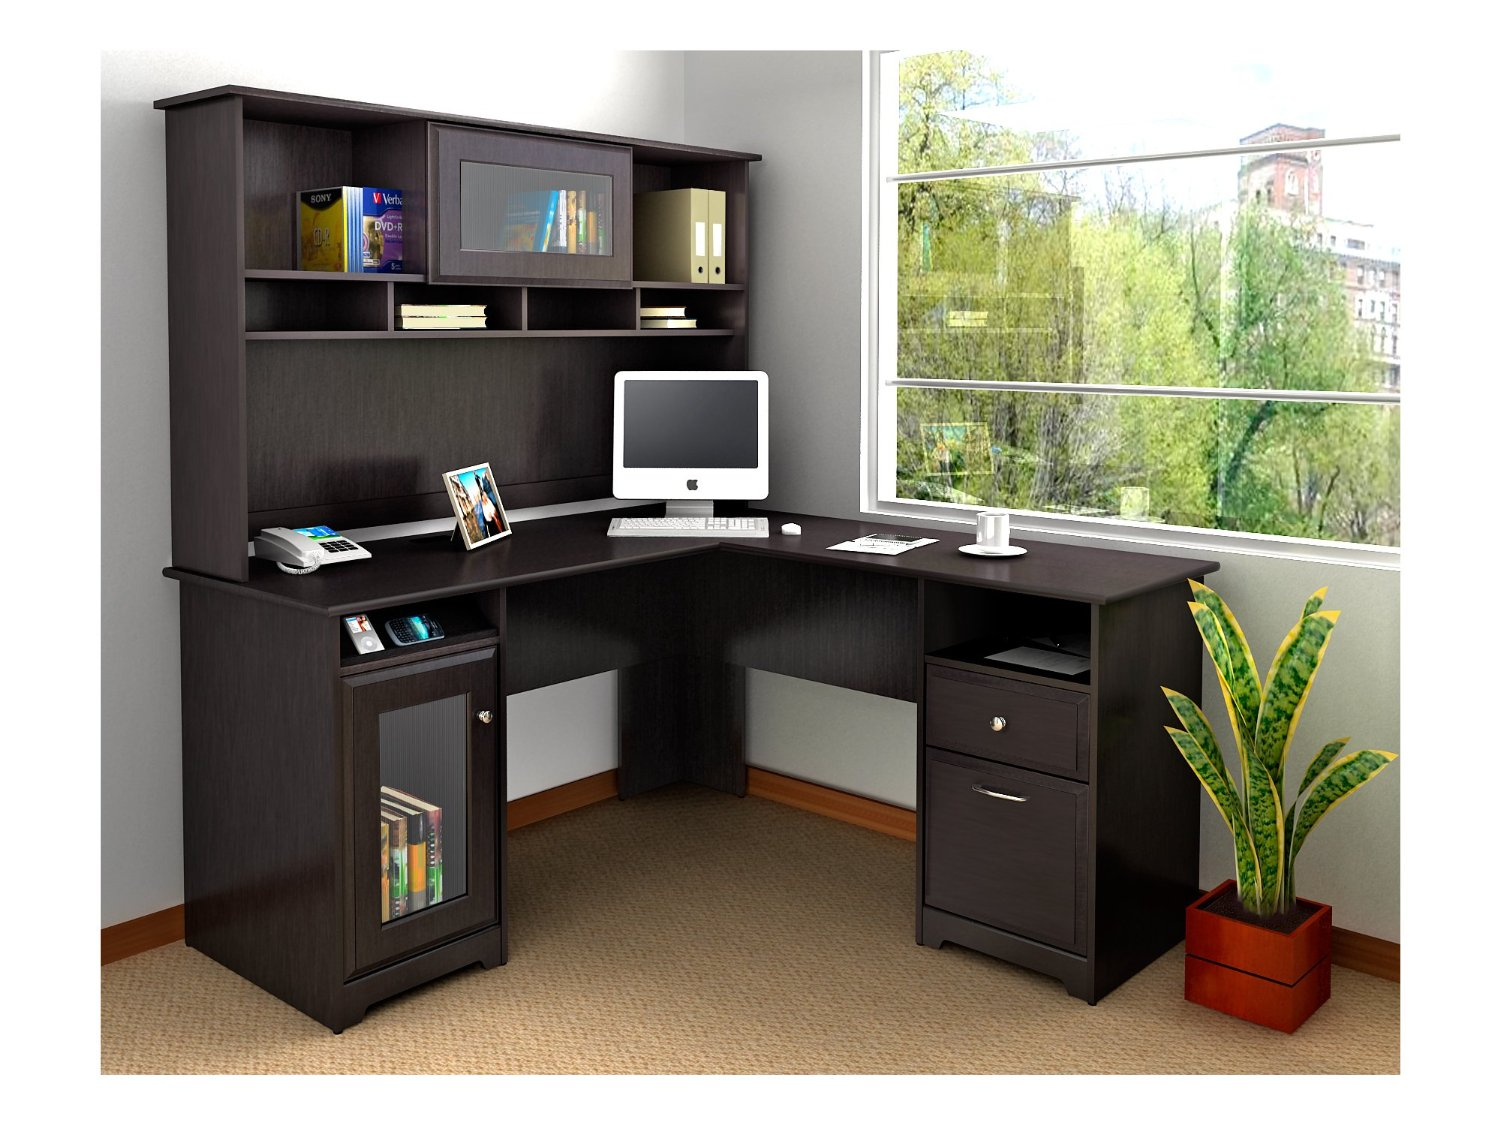 office corner desks. Corner Desk Home. Ikea Black Shaped With Shelves And Cabinet Home E Office Desks O